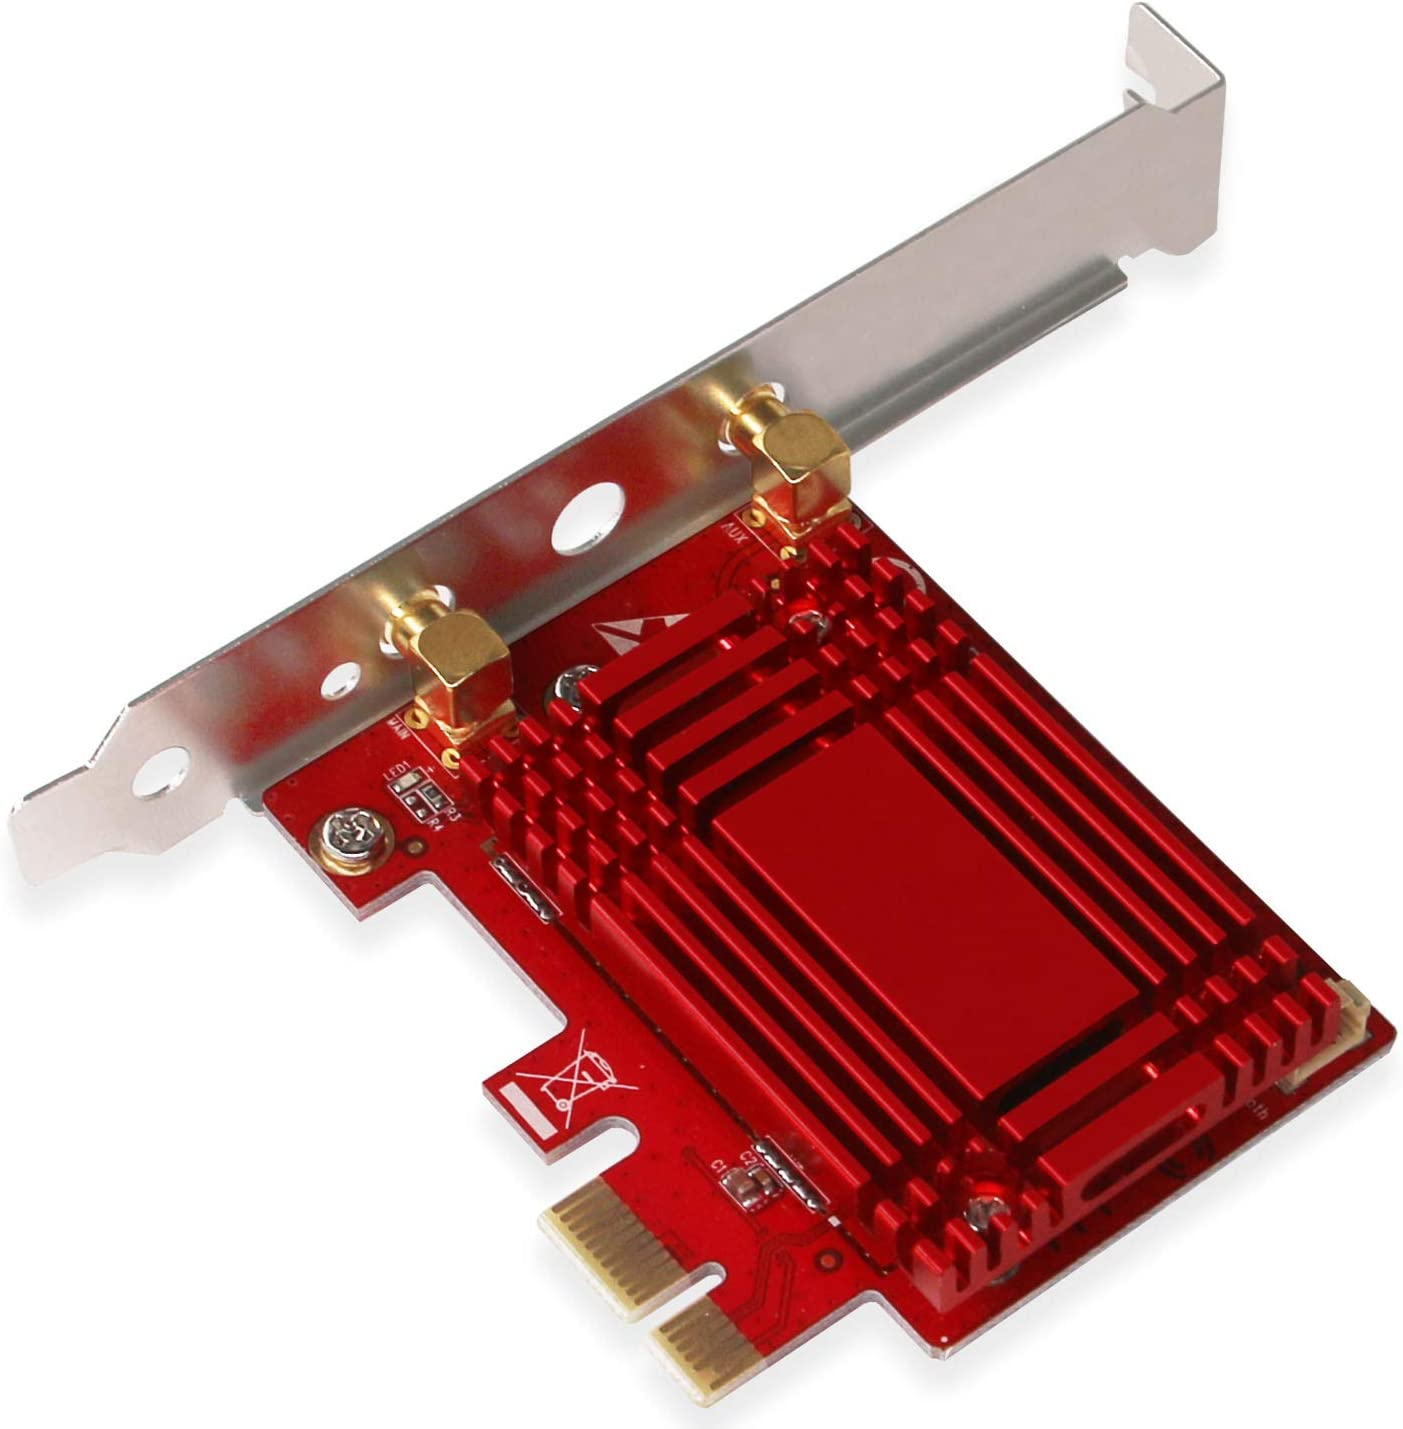 FebSmart PCIE Wireless AC Network Bluetooth Card for Windows 10 64bit and Linux Kernel 4.14 Systems-2.4GHz 300Mbps or 5GHz 1.73Gbps Max Speed-Bluetooth 5.0-Based on Intel Wireless-AC 9260 NGW AC2030